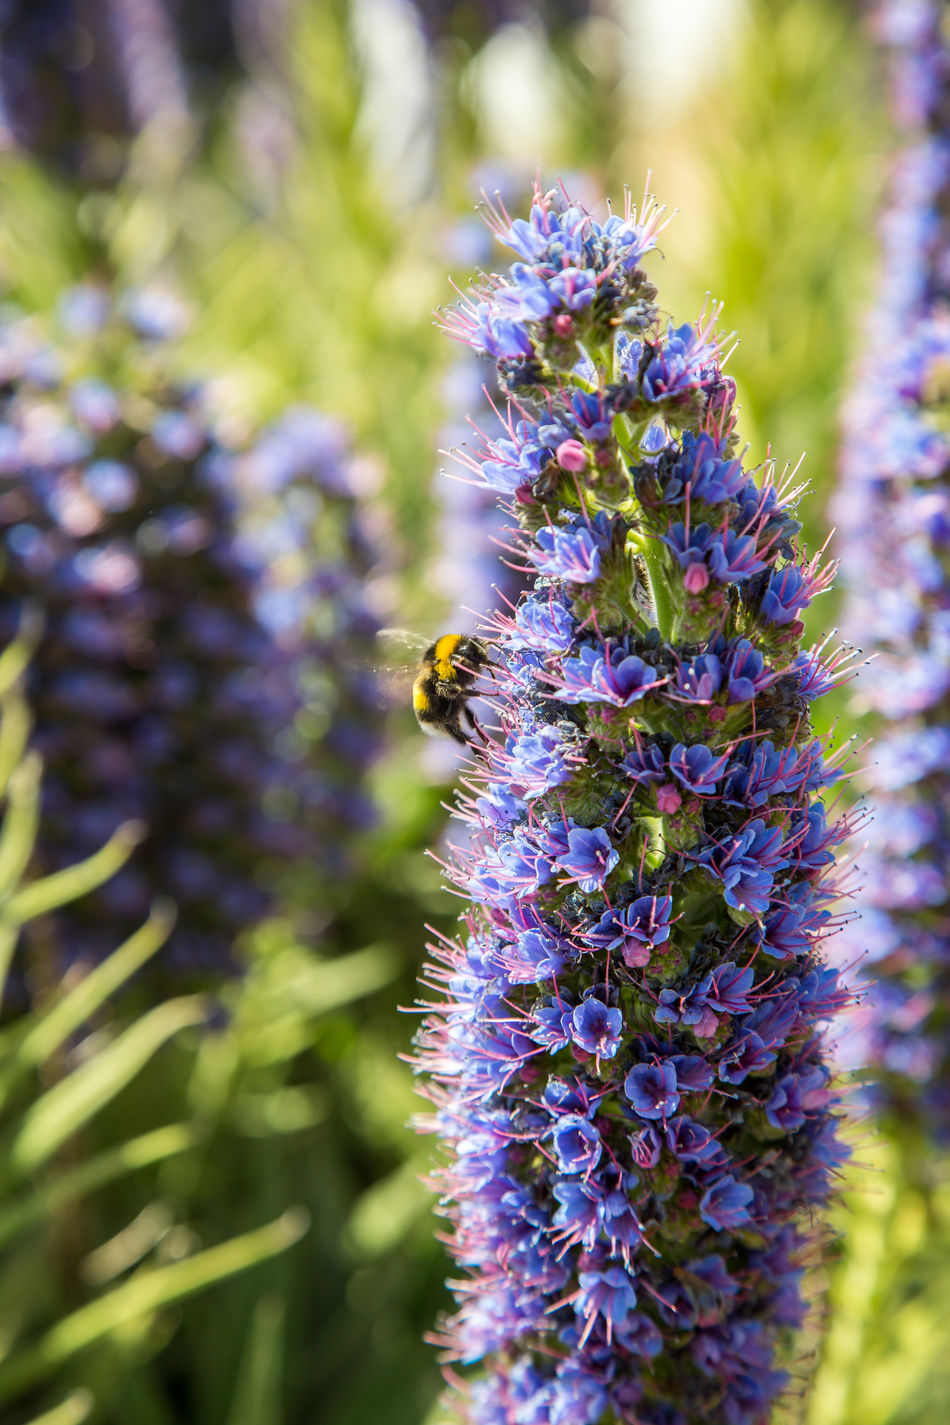 Beauty In Nature Bee Blue Close-up Echium Candicans Flowers Fragility Freshness Of Flower Growth Process Insect Lavender Madeira Island Massaroco Massaroco Endemic Plant Nature No People Outdoors Plant Purple Purple Flower